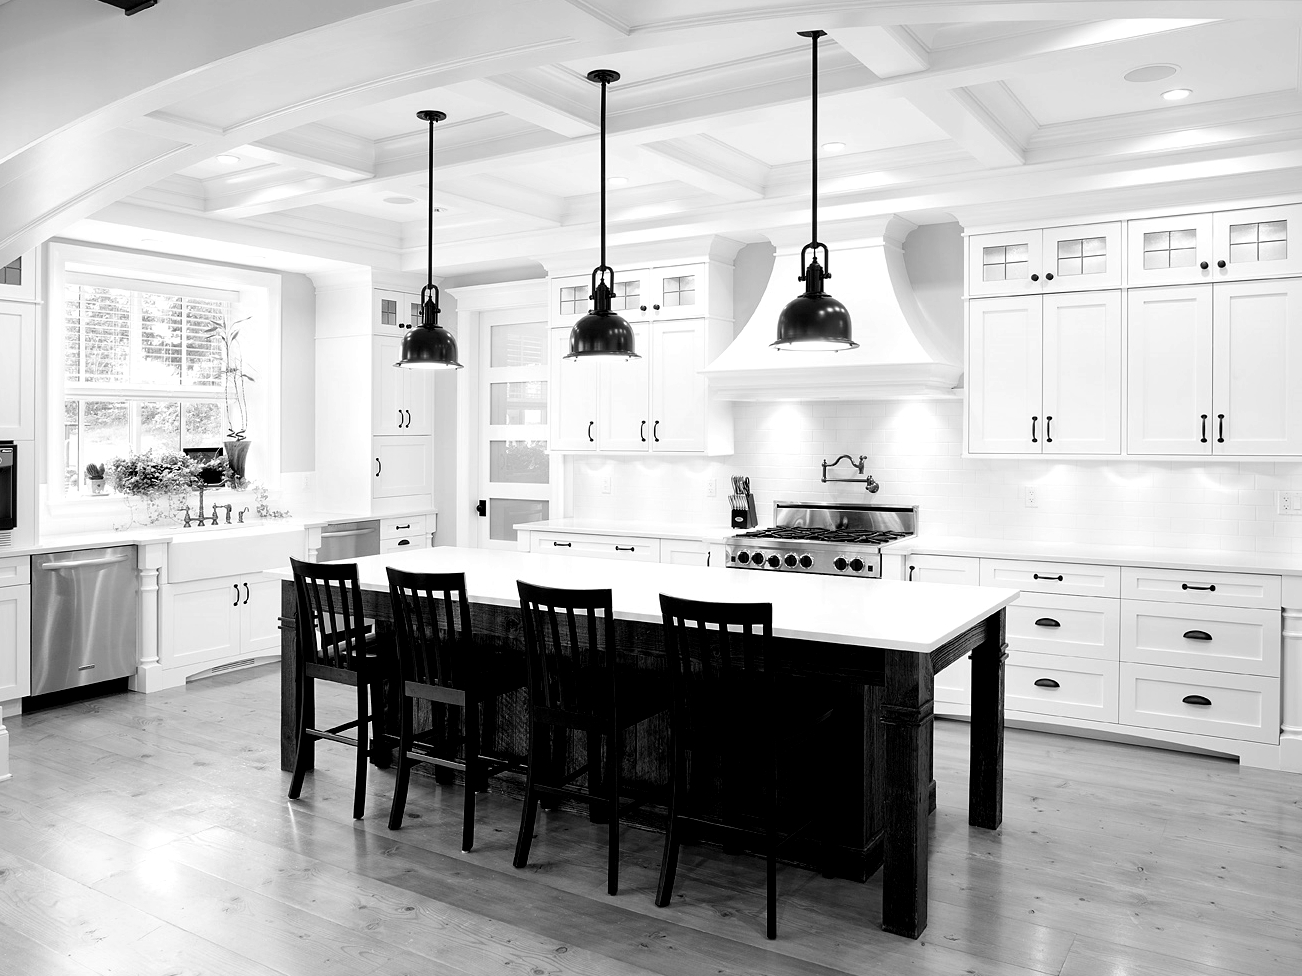 Home Improvement Projects: best bang for yourbuck?